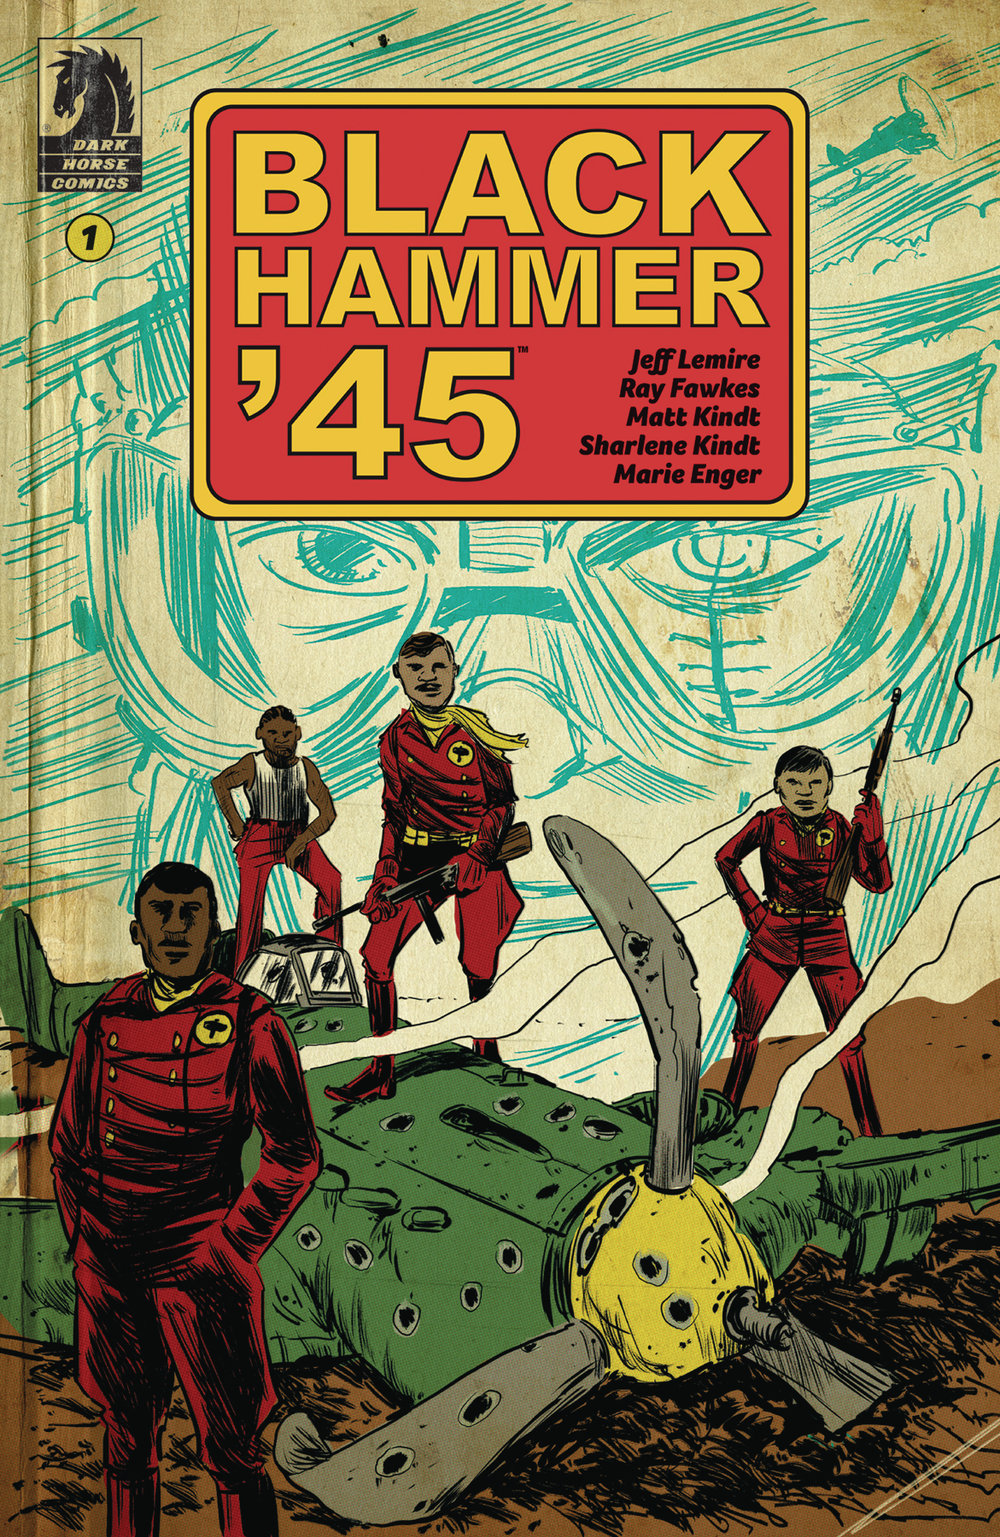 Black Hammer '45 #1  is out 3/6/2019.